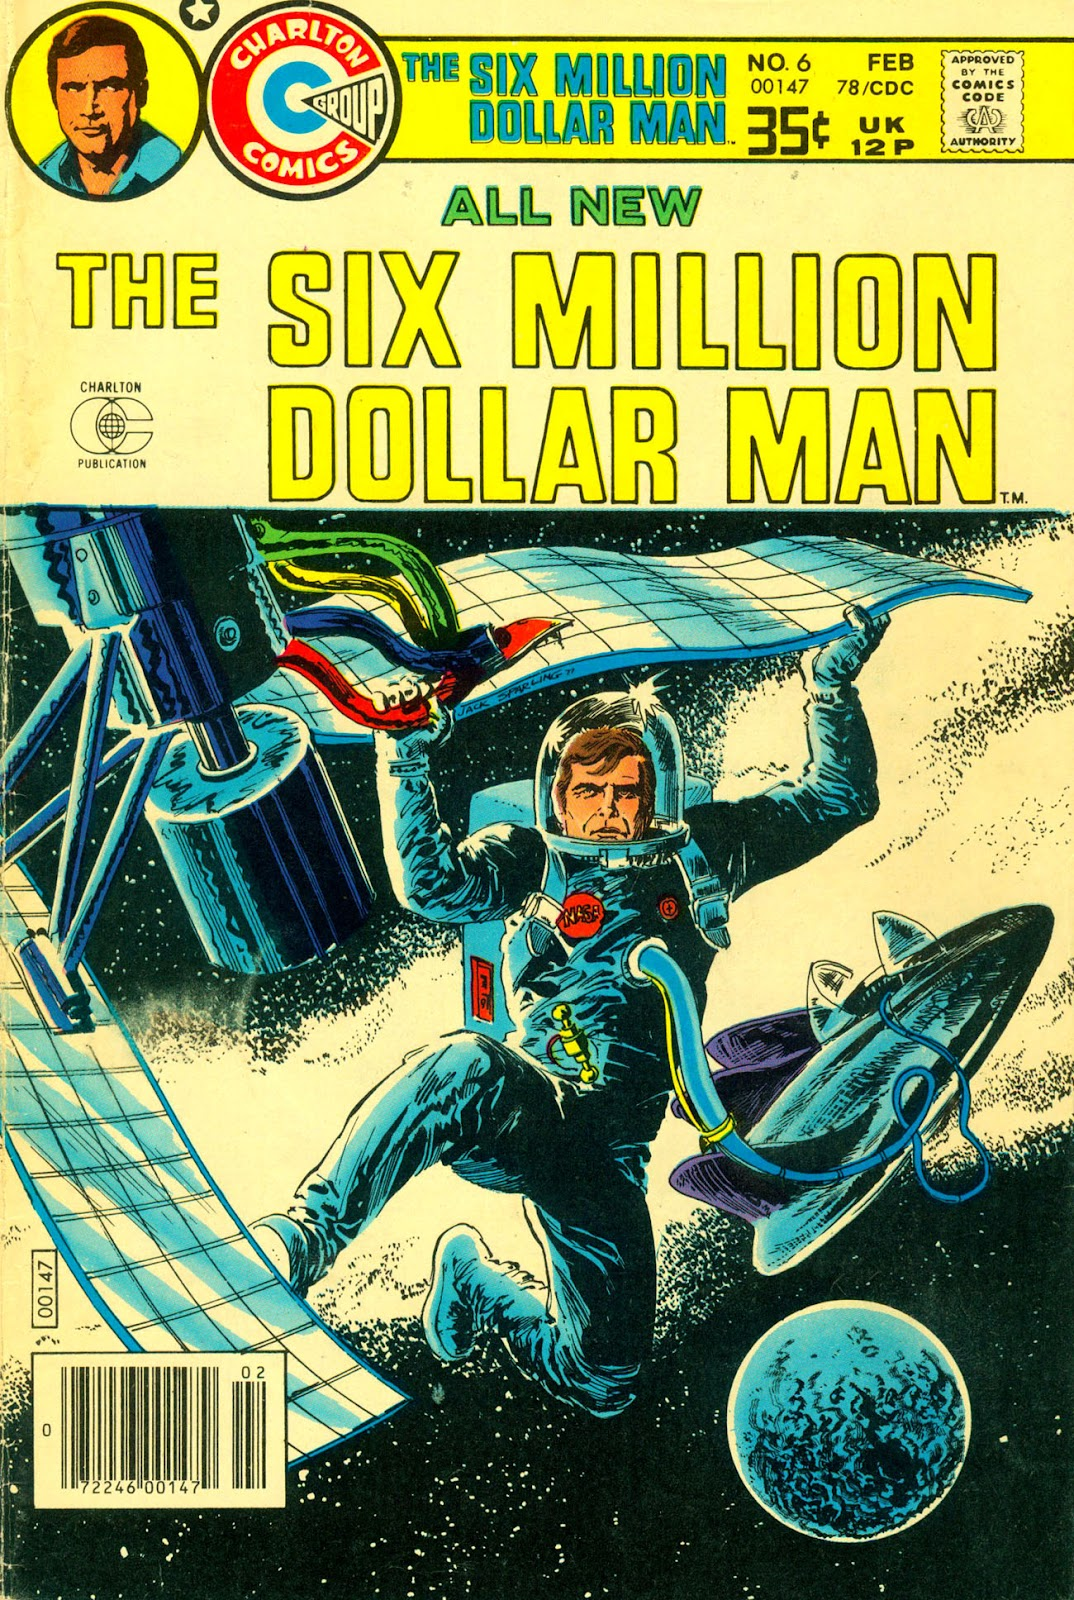 The Six Million Dollar Man [comic] issue 6 - Page 1